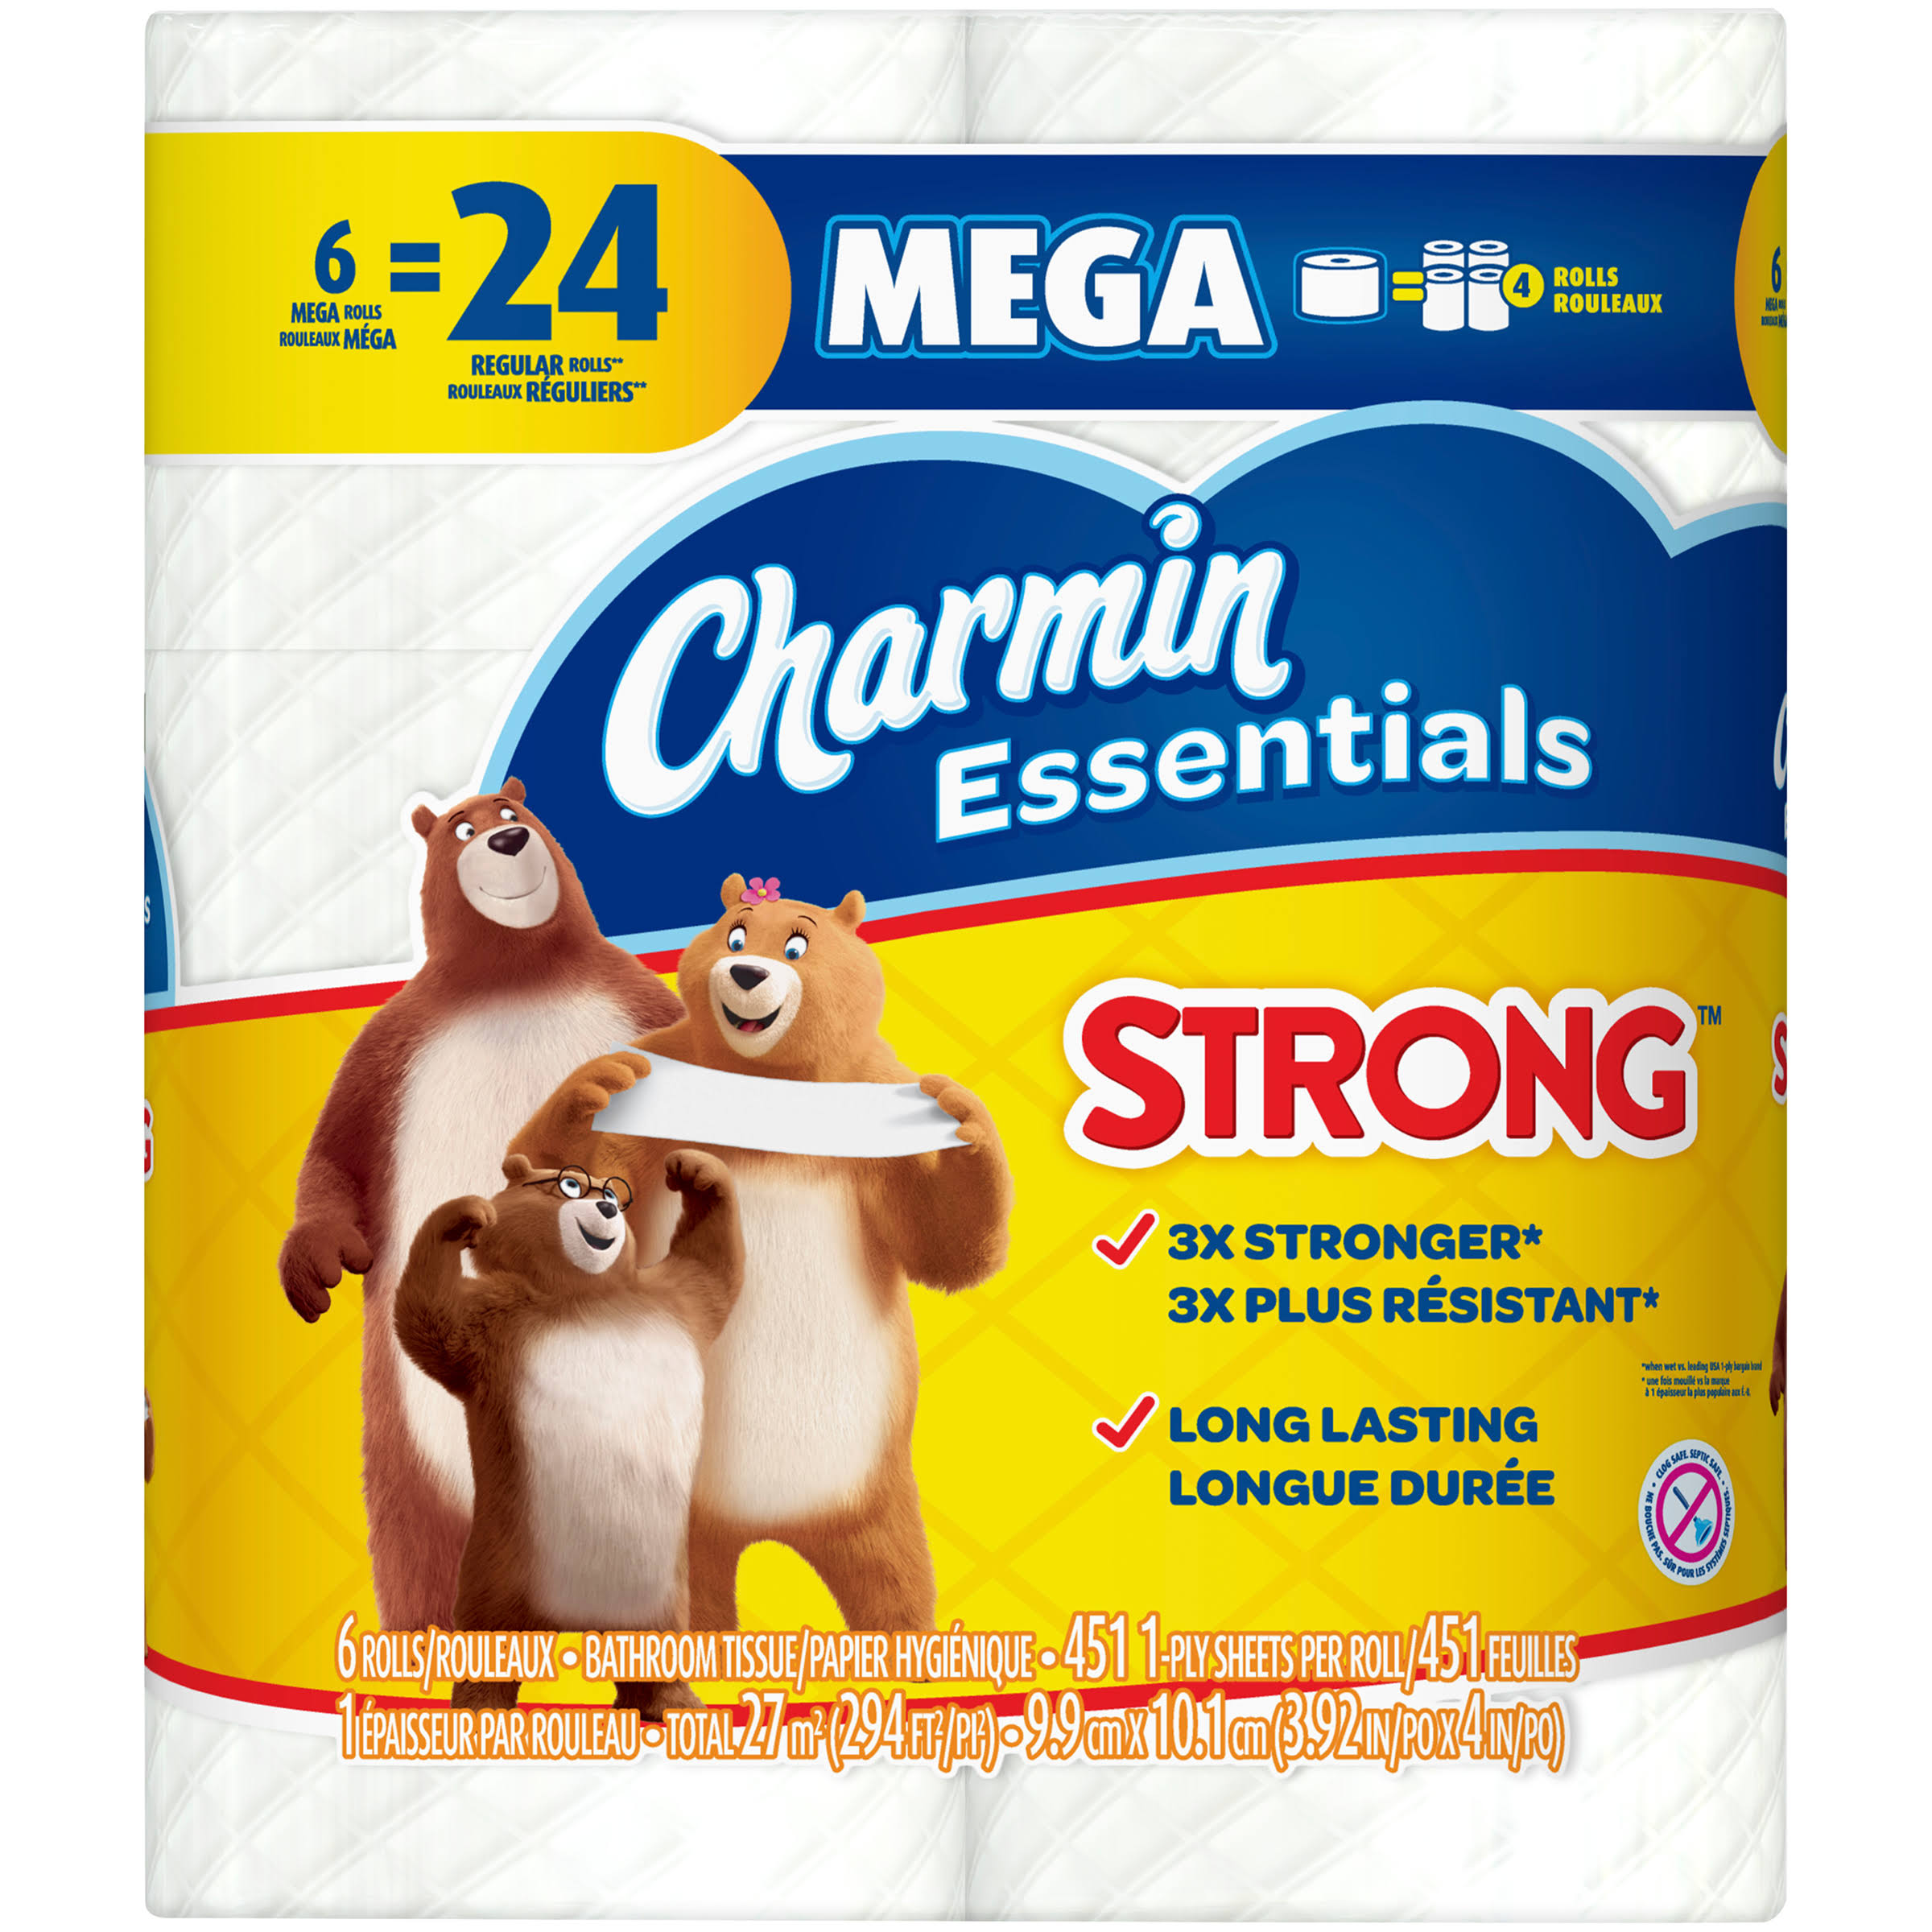 Charmin Essentials Strong Toilet Paper, Mega Rolls - 6 pack